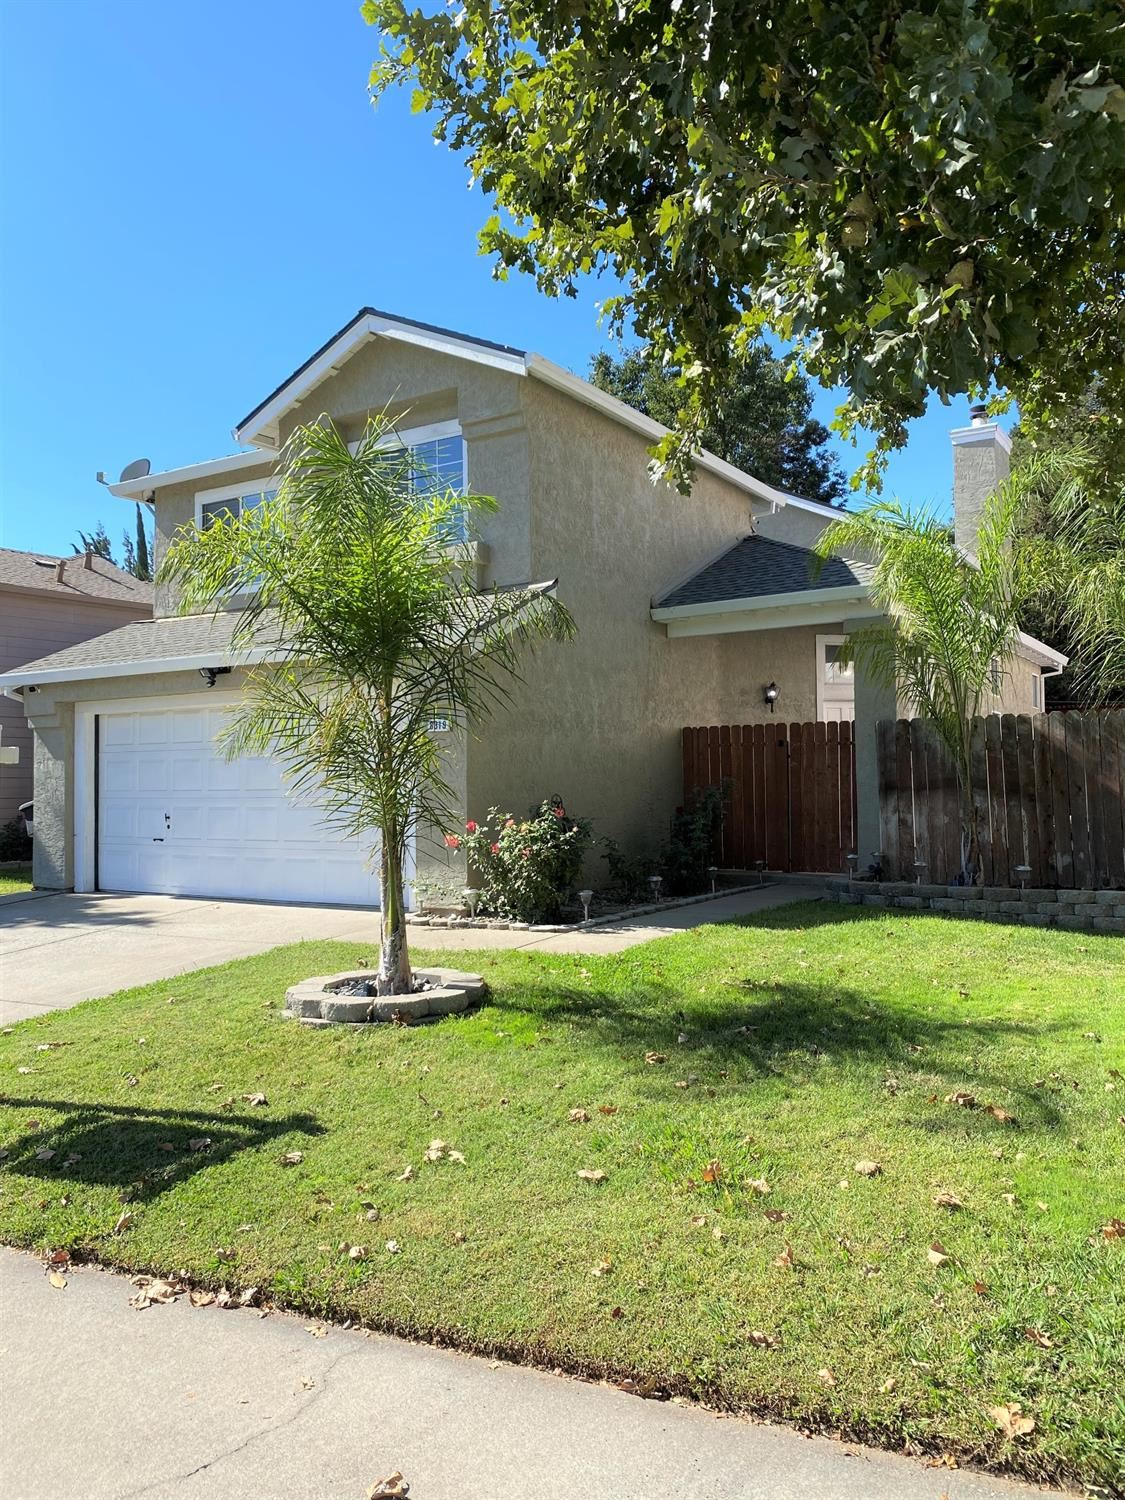 Photo of 8319 Falcon View Drive, Antelope, CA 95843 (MLS # 20062611)